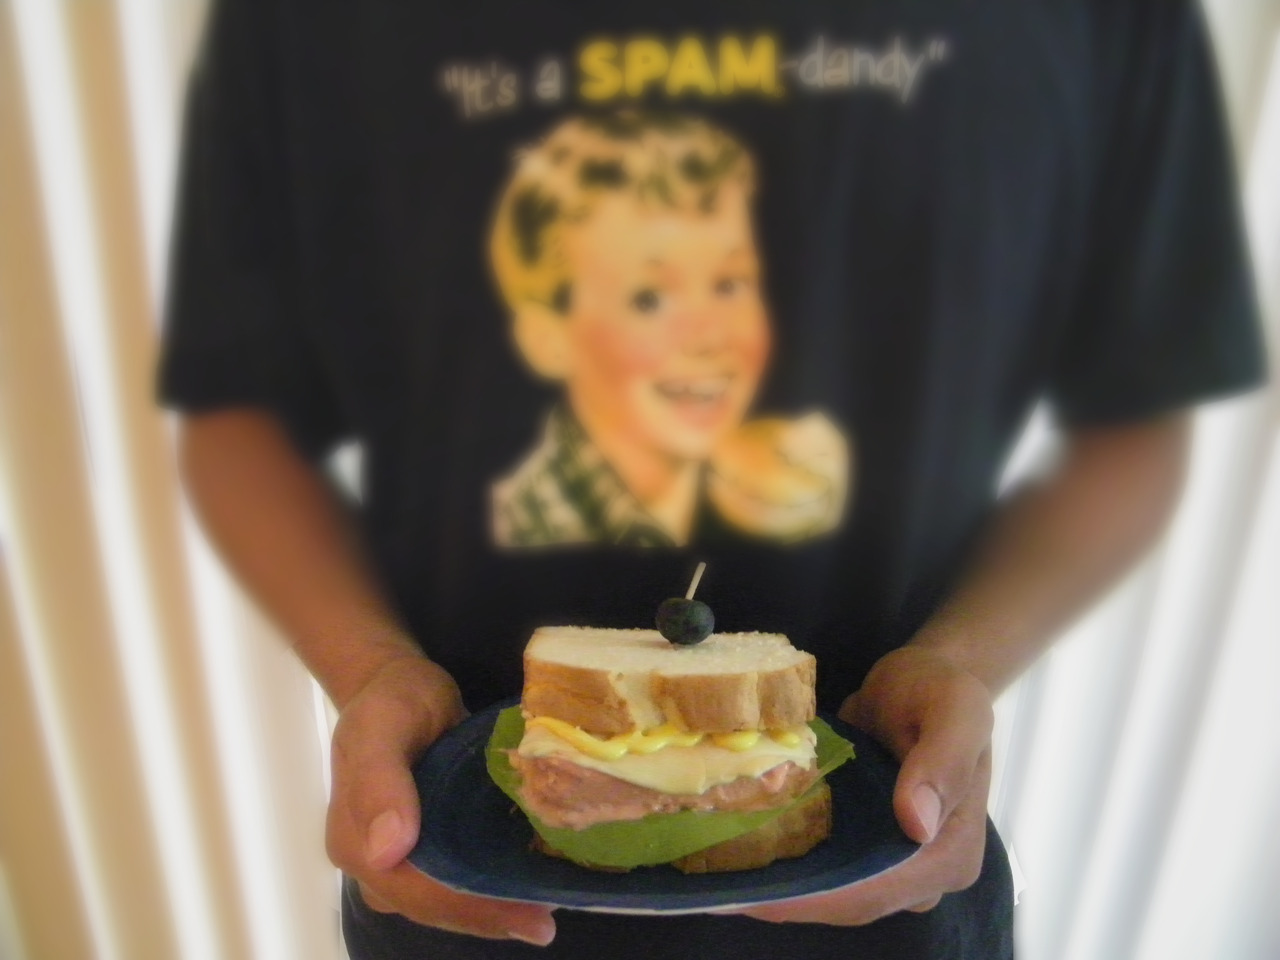 I made a Spamwich cake for a contest to celebrate the 75th anniversary of SPAM. Check it out! This is the pretty version, click to see original. Bread: Angel food loaf SPAM: Angel food loaf with pink colored frosting Cheese: Melted, rolled-out starburst candies Mustard: Colored frosting Olive: blueberry Lettuce: I was going to color some rice paper green, but I didn't have any so I cut a piece of a sheet of plastic table cloth